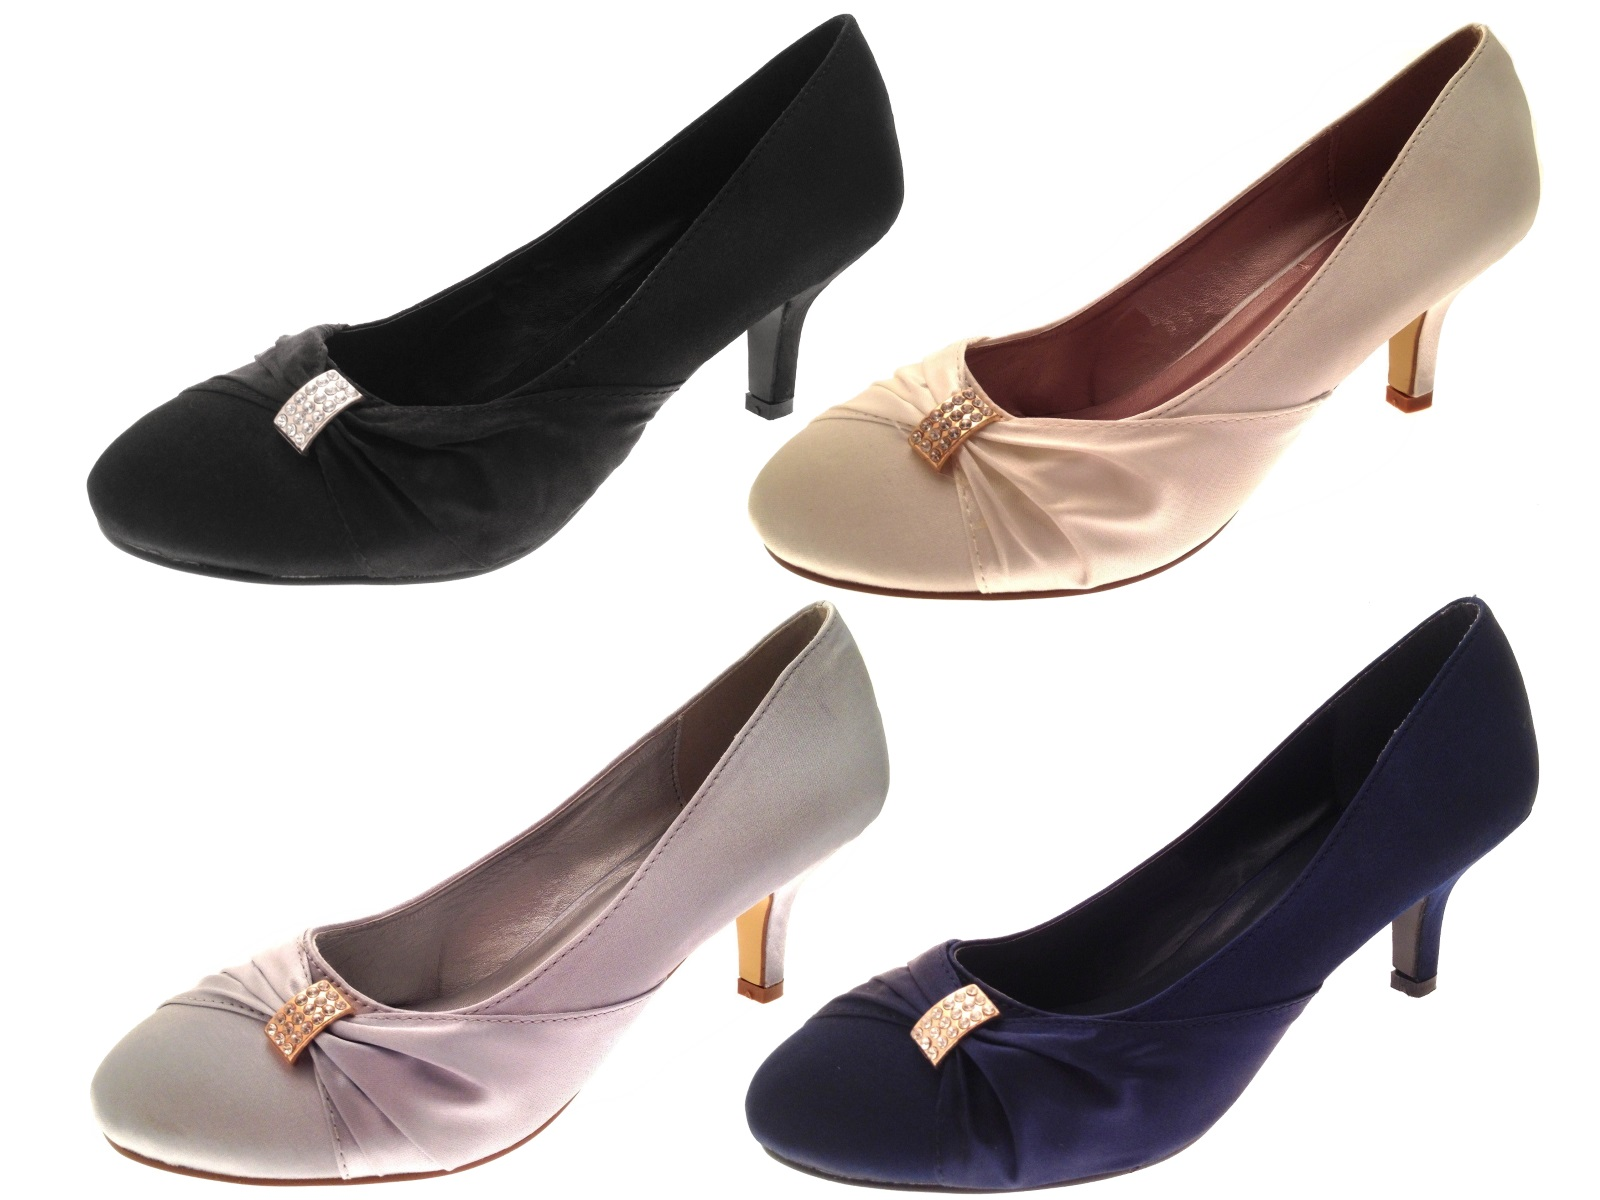 New  Sandals Cute Wedge Heel Sandal Platform Open Toe Wedges Shoes  EBay